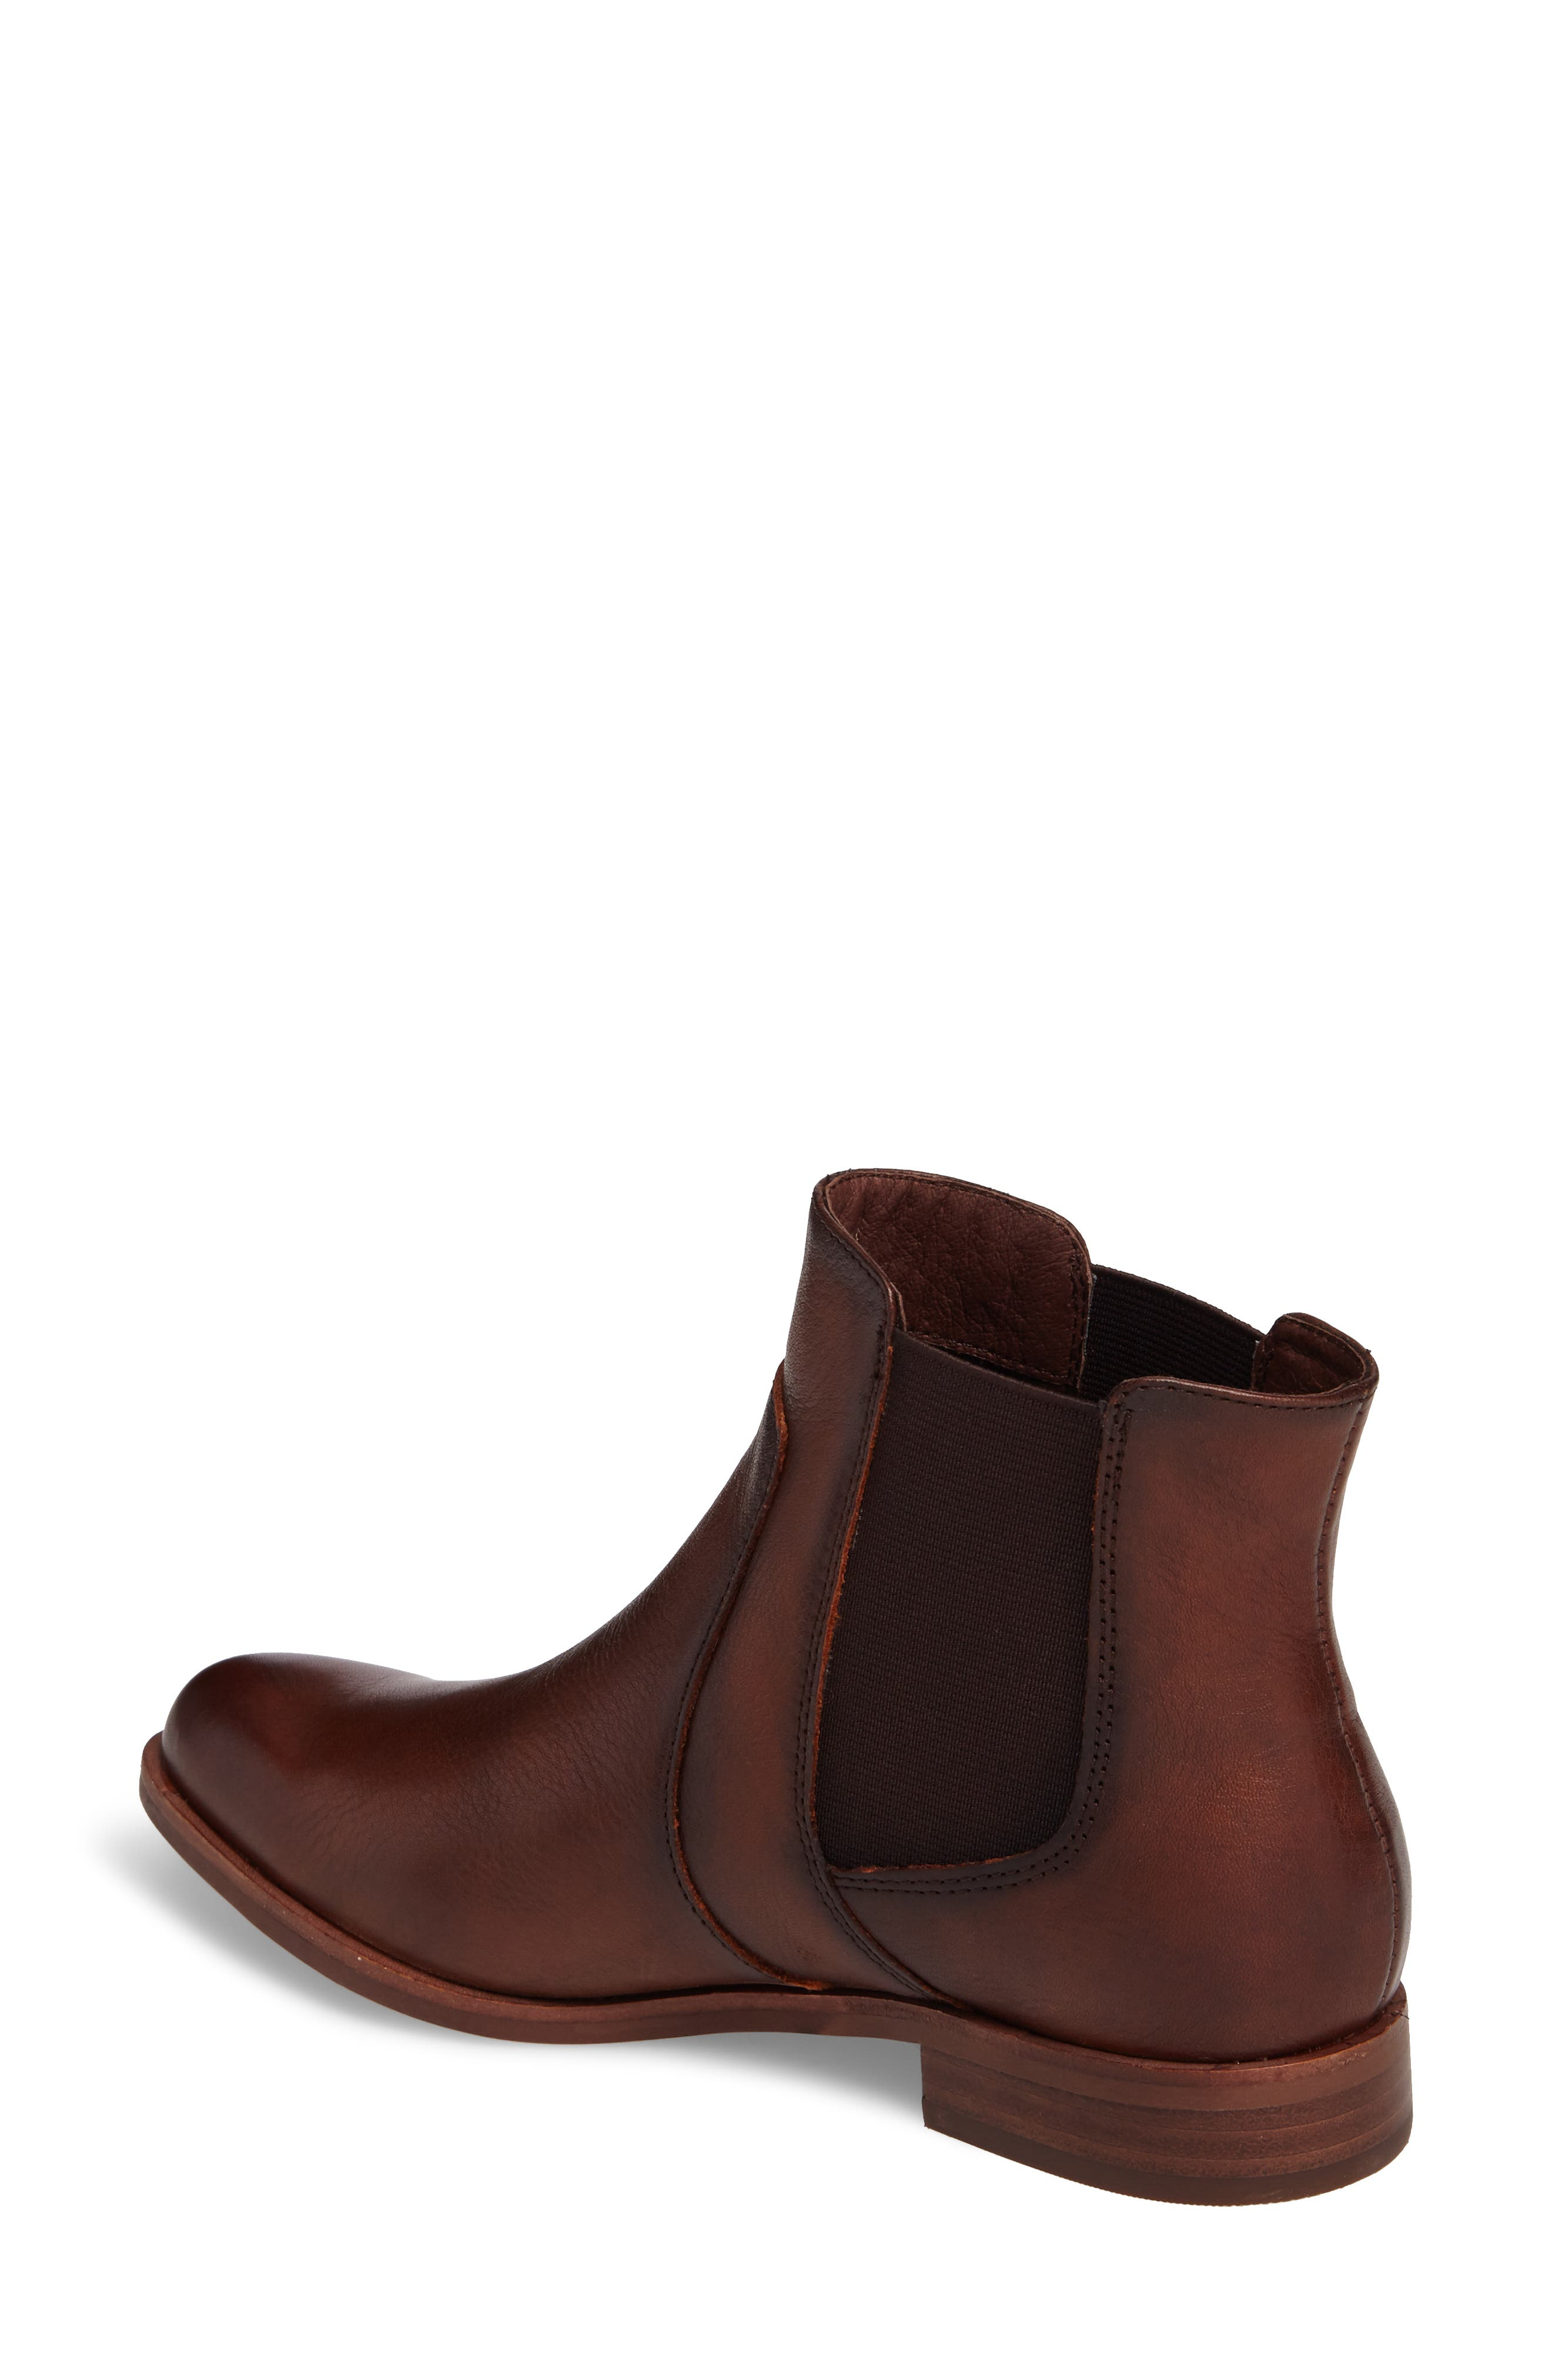 Mora Bootie,                             Alternate thumbnail 2, color,                             Whiskey Leather